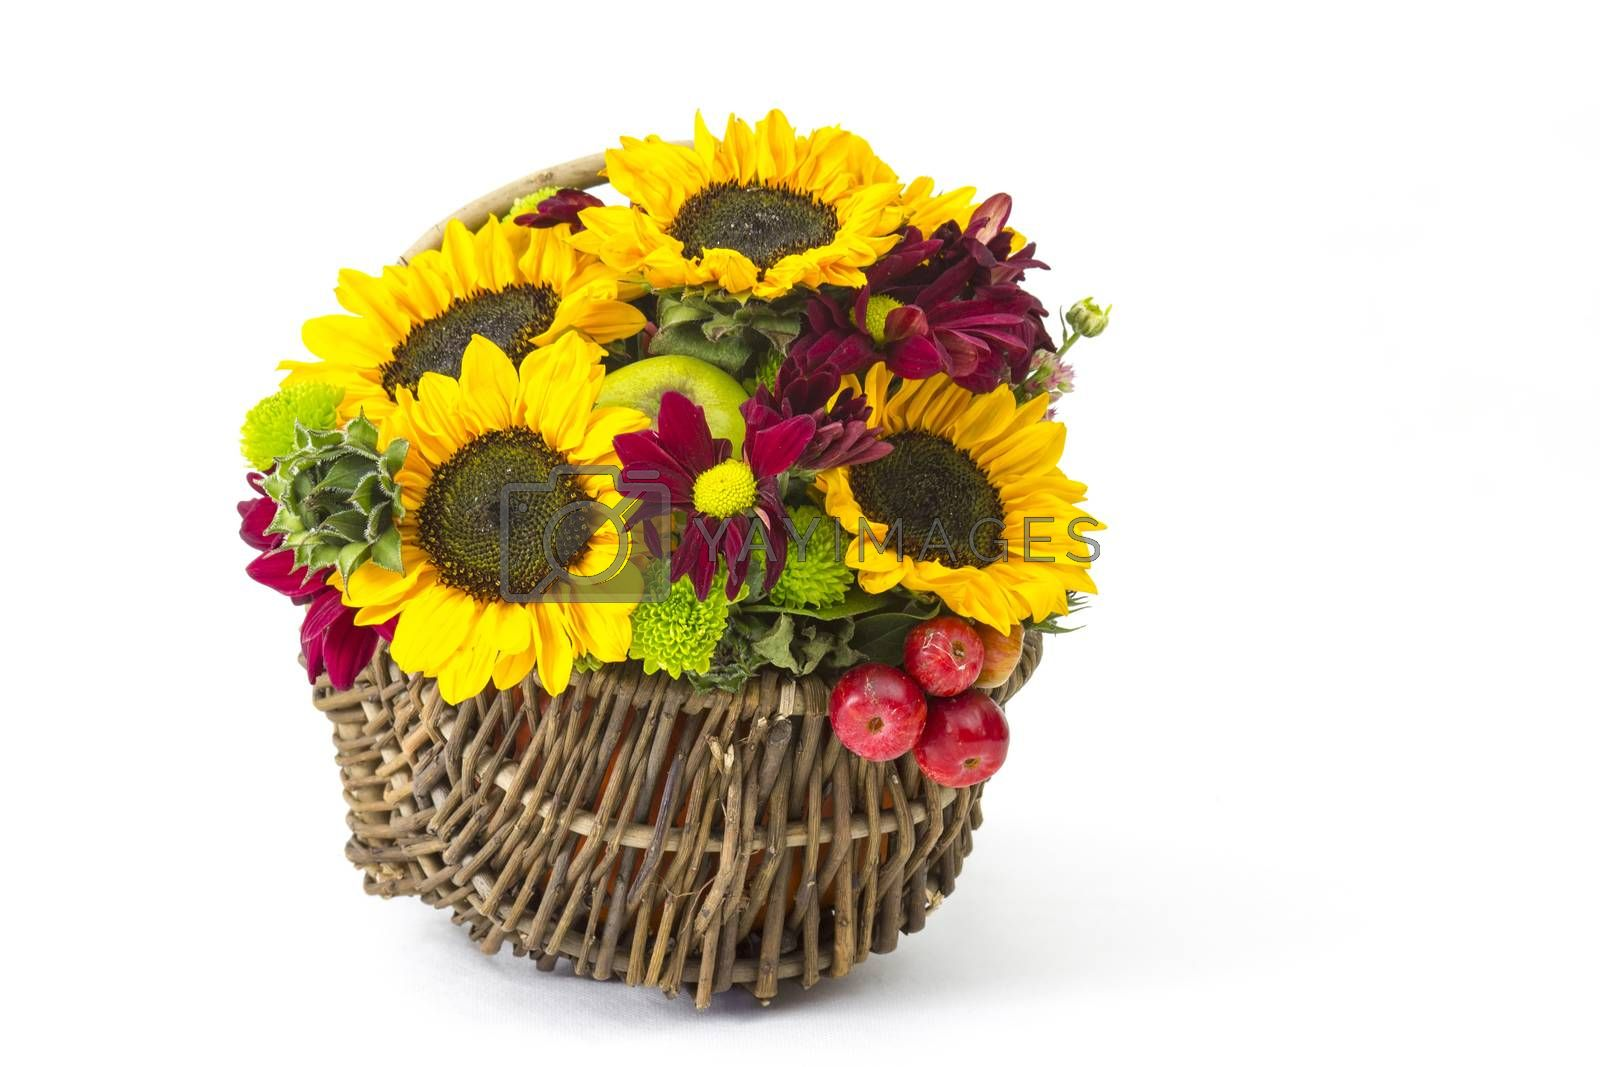 basket with autumnal flowers, berries and apples on white background